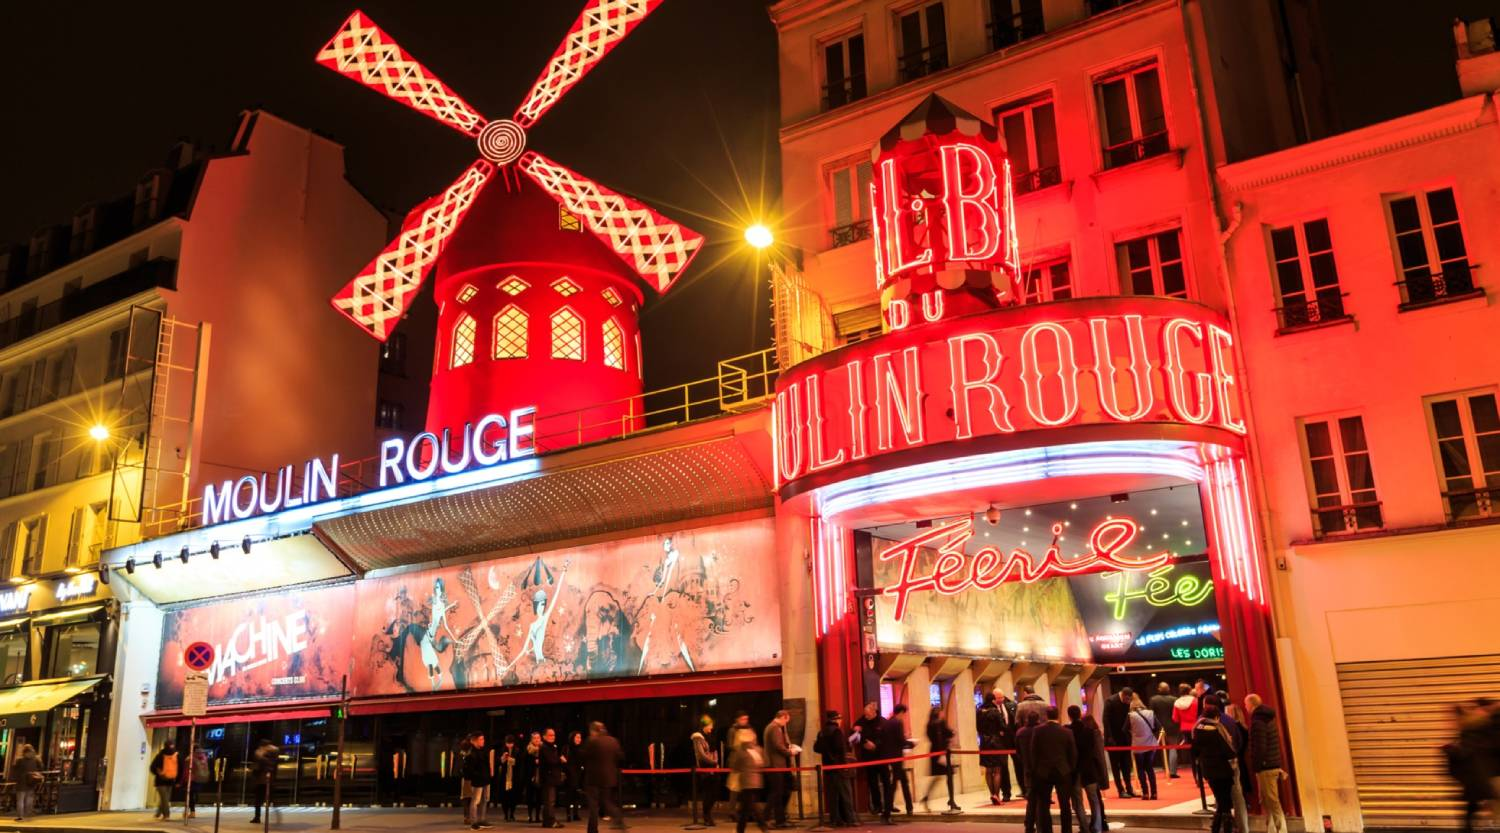 Moulin Rouge - Things To Do In Paris